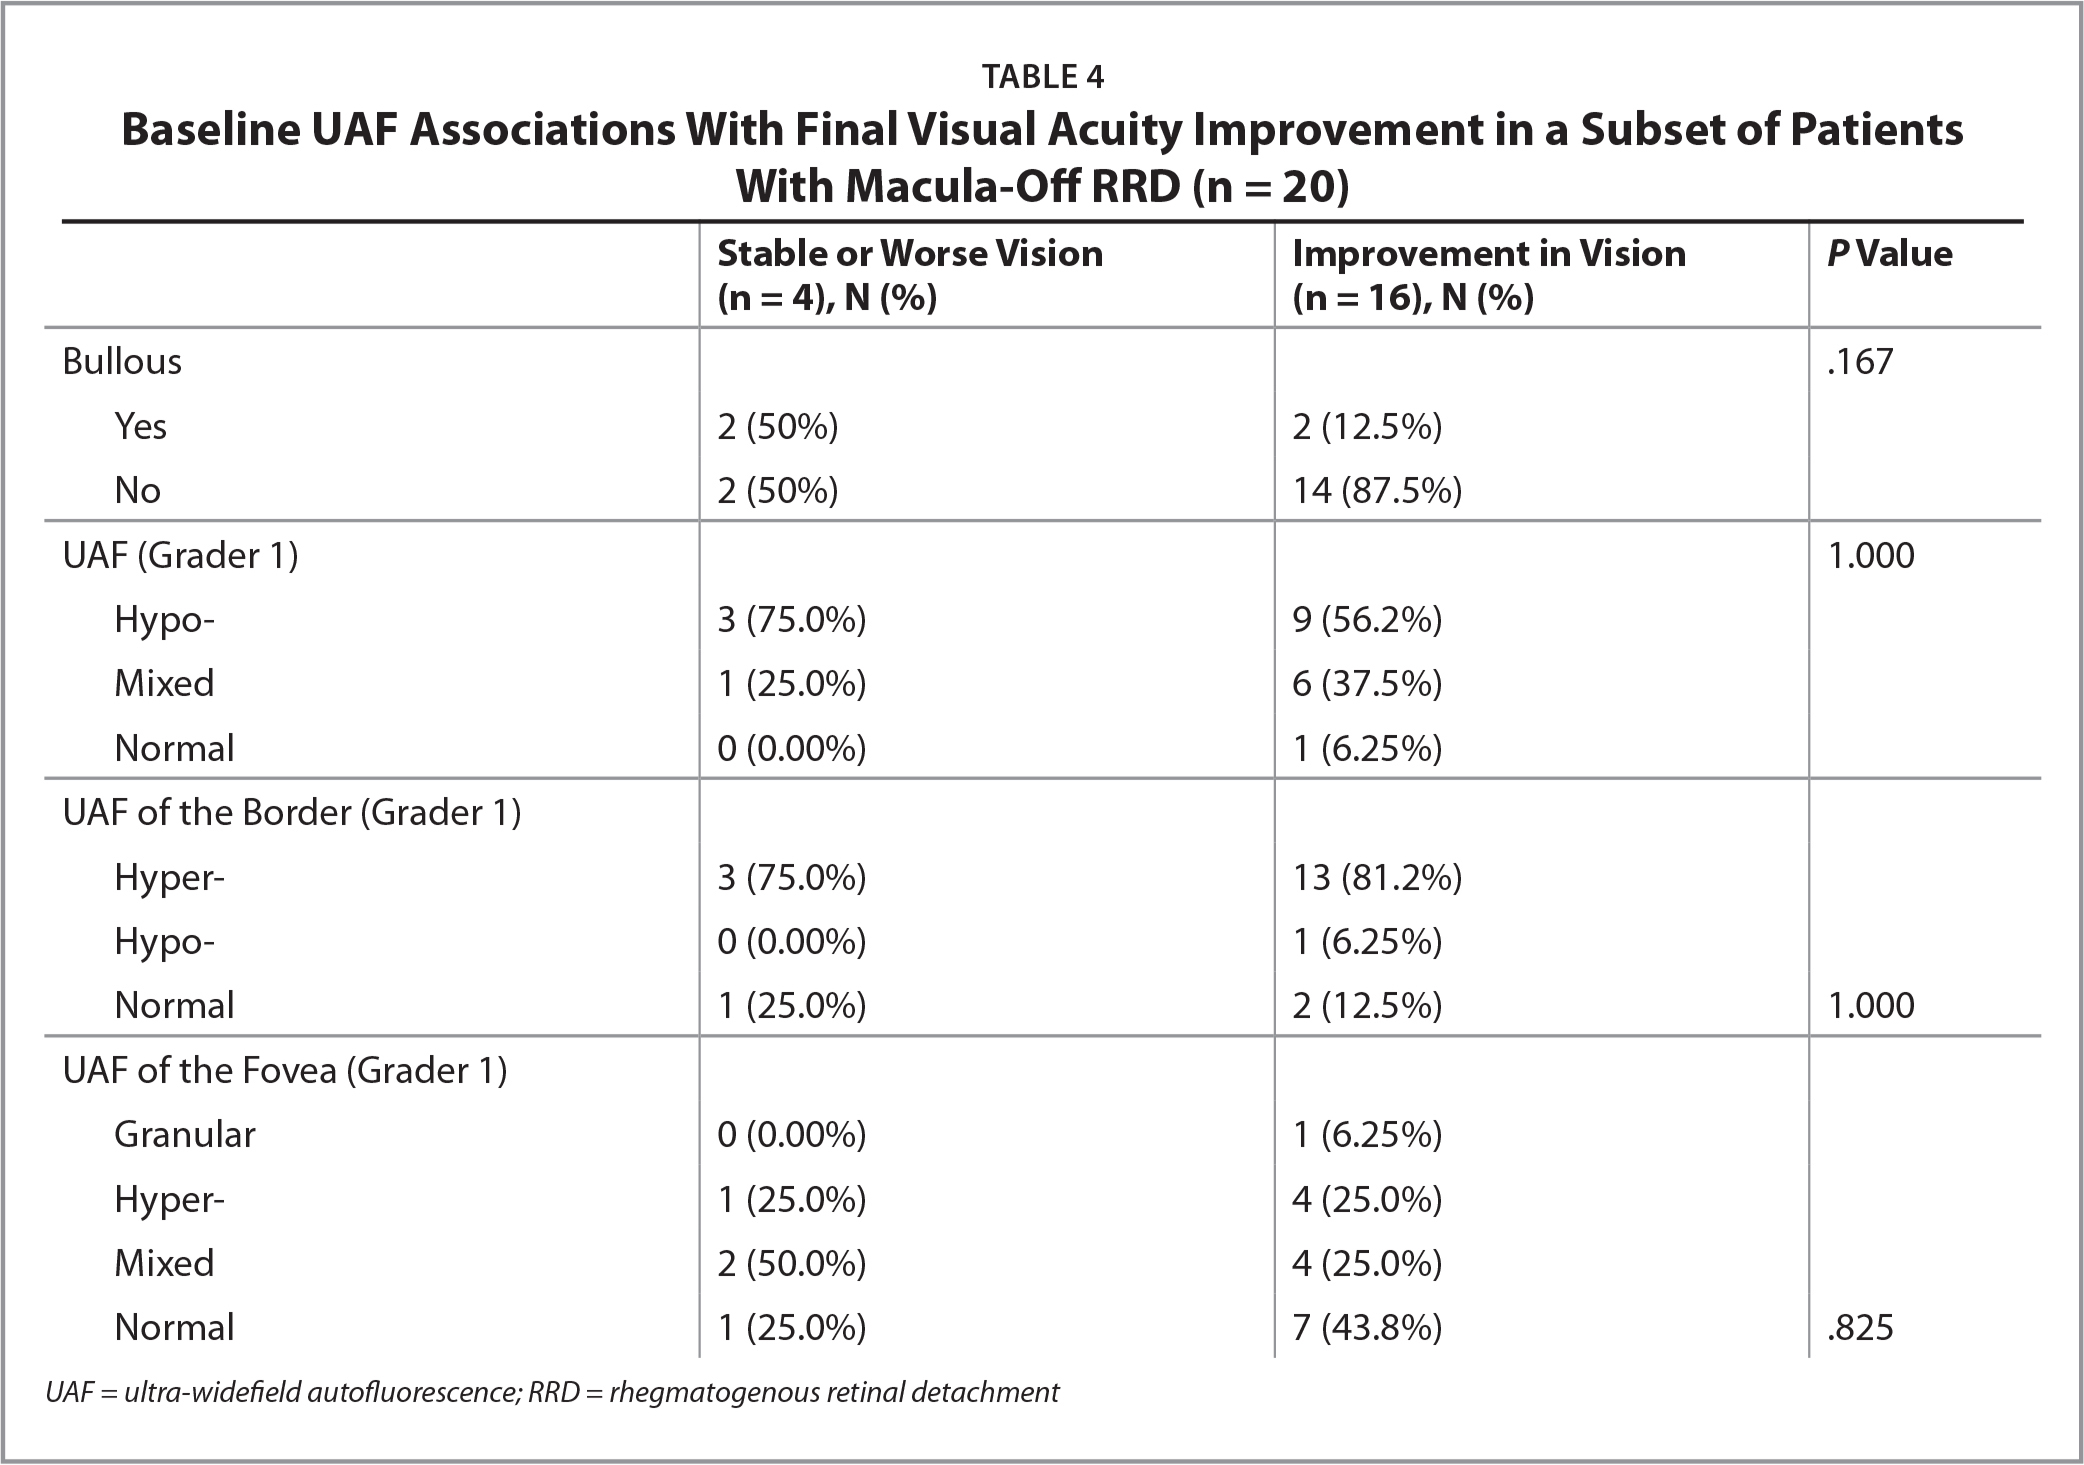 Baseline UAF Associations With Final Visual Acuity Improvement in a Subset of Patients With Macula-Off RRD (n = 20)